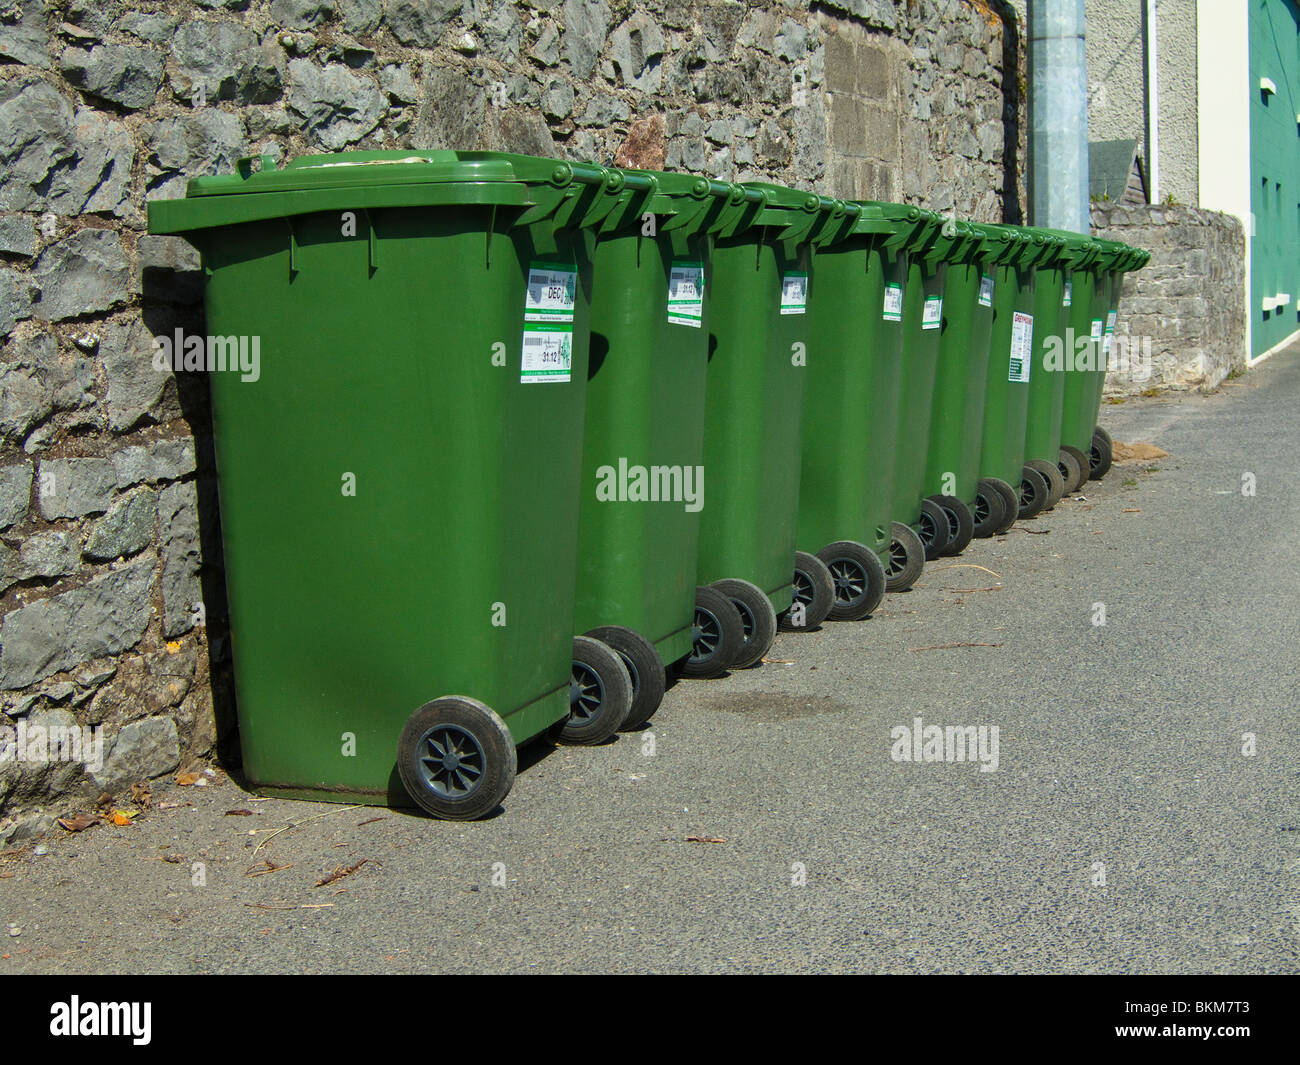 A line of green wheelie bins containing recyclable material awaiting collection - Skerries, north County Dublin, - Stock Image